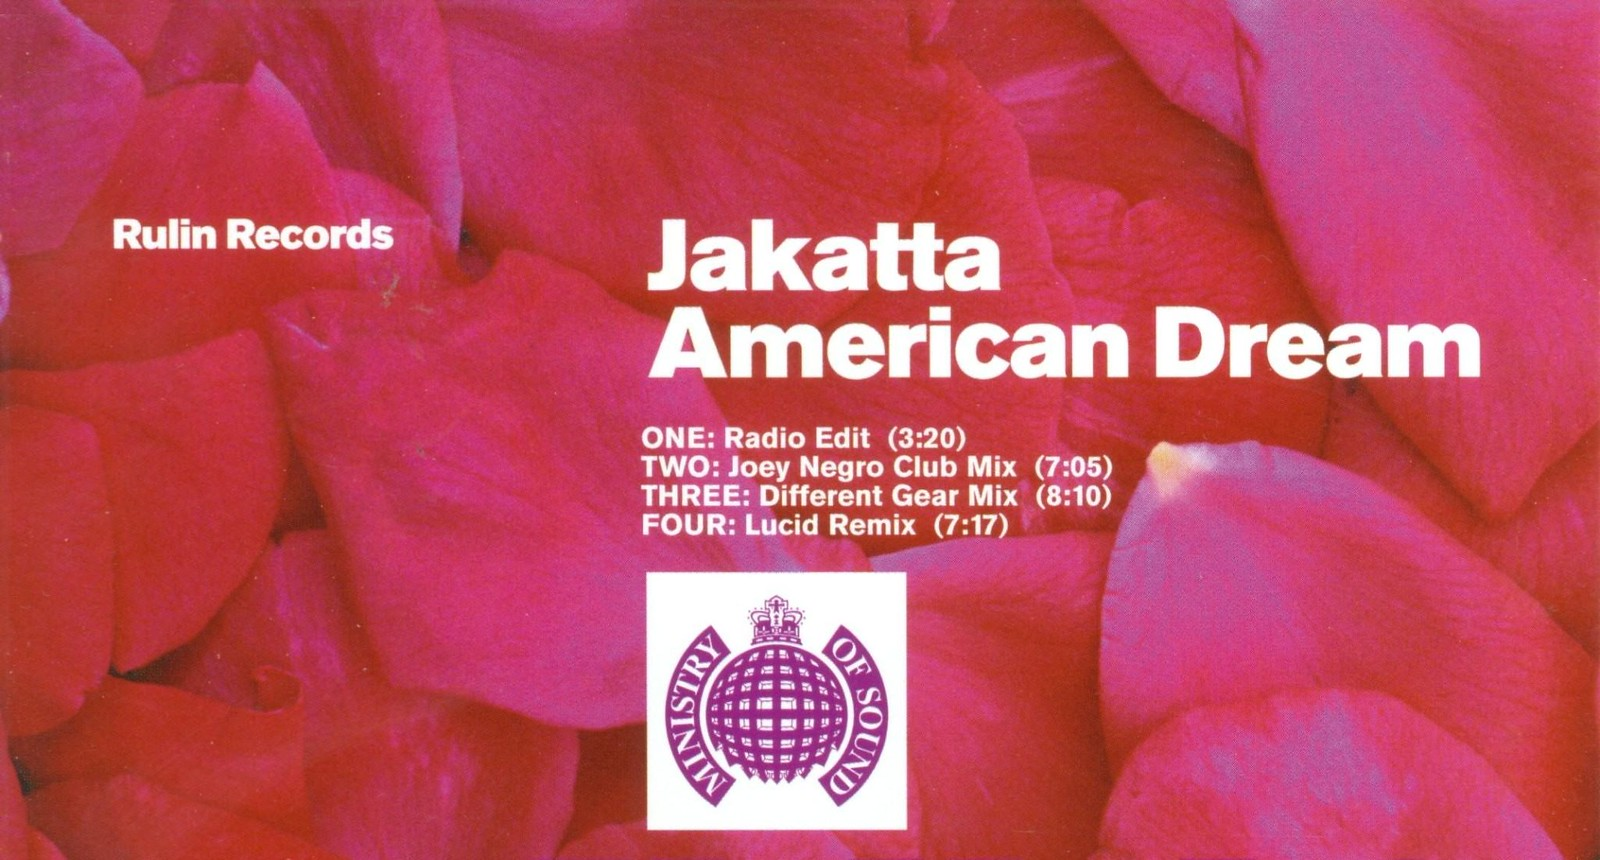 Jakatta Feat. Swati Natekar - American Dream (Different Gear Remix) [Progressive House]